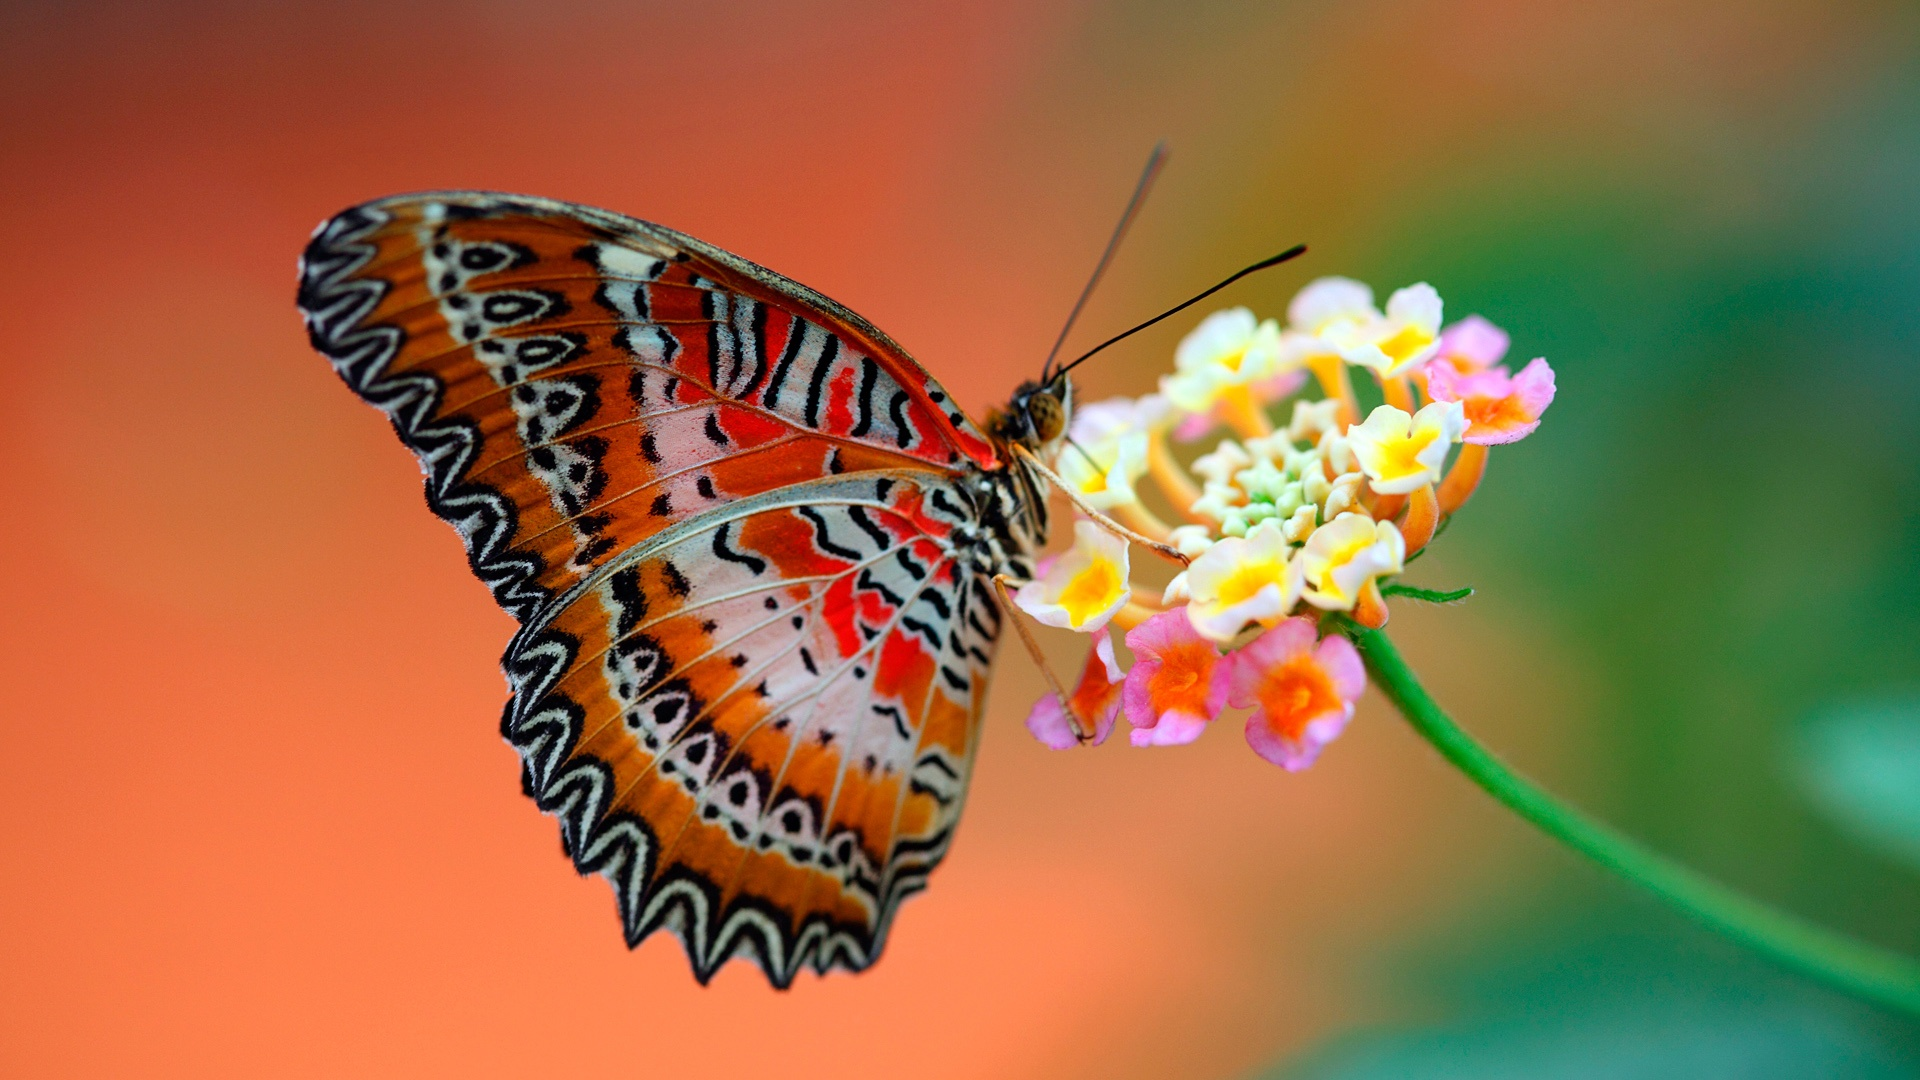 Free Download Cool Butterfly Hd Wallpapers 1080p In Wallpapers Image 1920x1080 For Your Desktop Mobile Tablet Explore 72 Cool Butterfly Backgrounds Butterfly Wallpapers Free Download Free Butterfly Wallpaper For